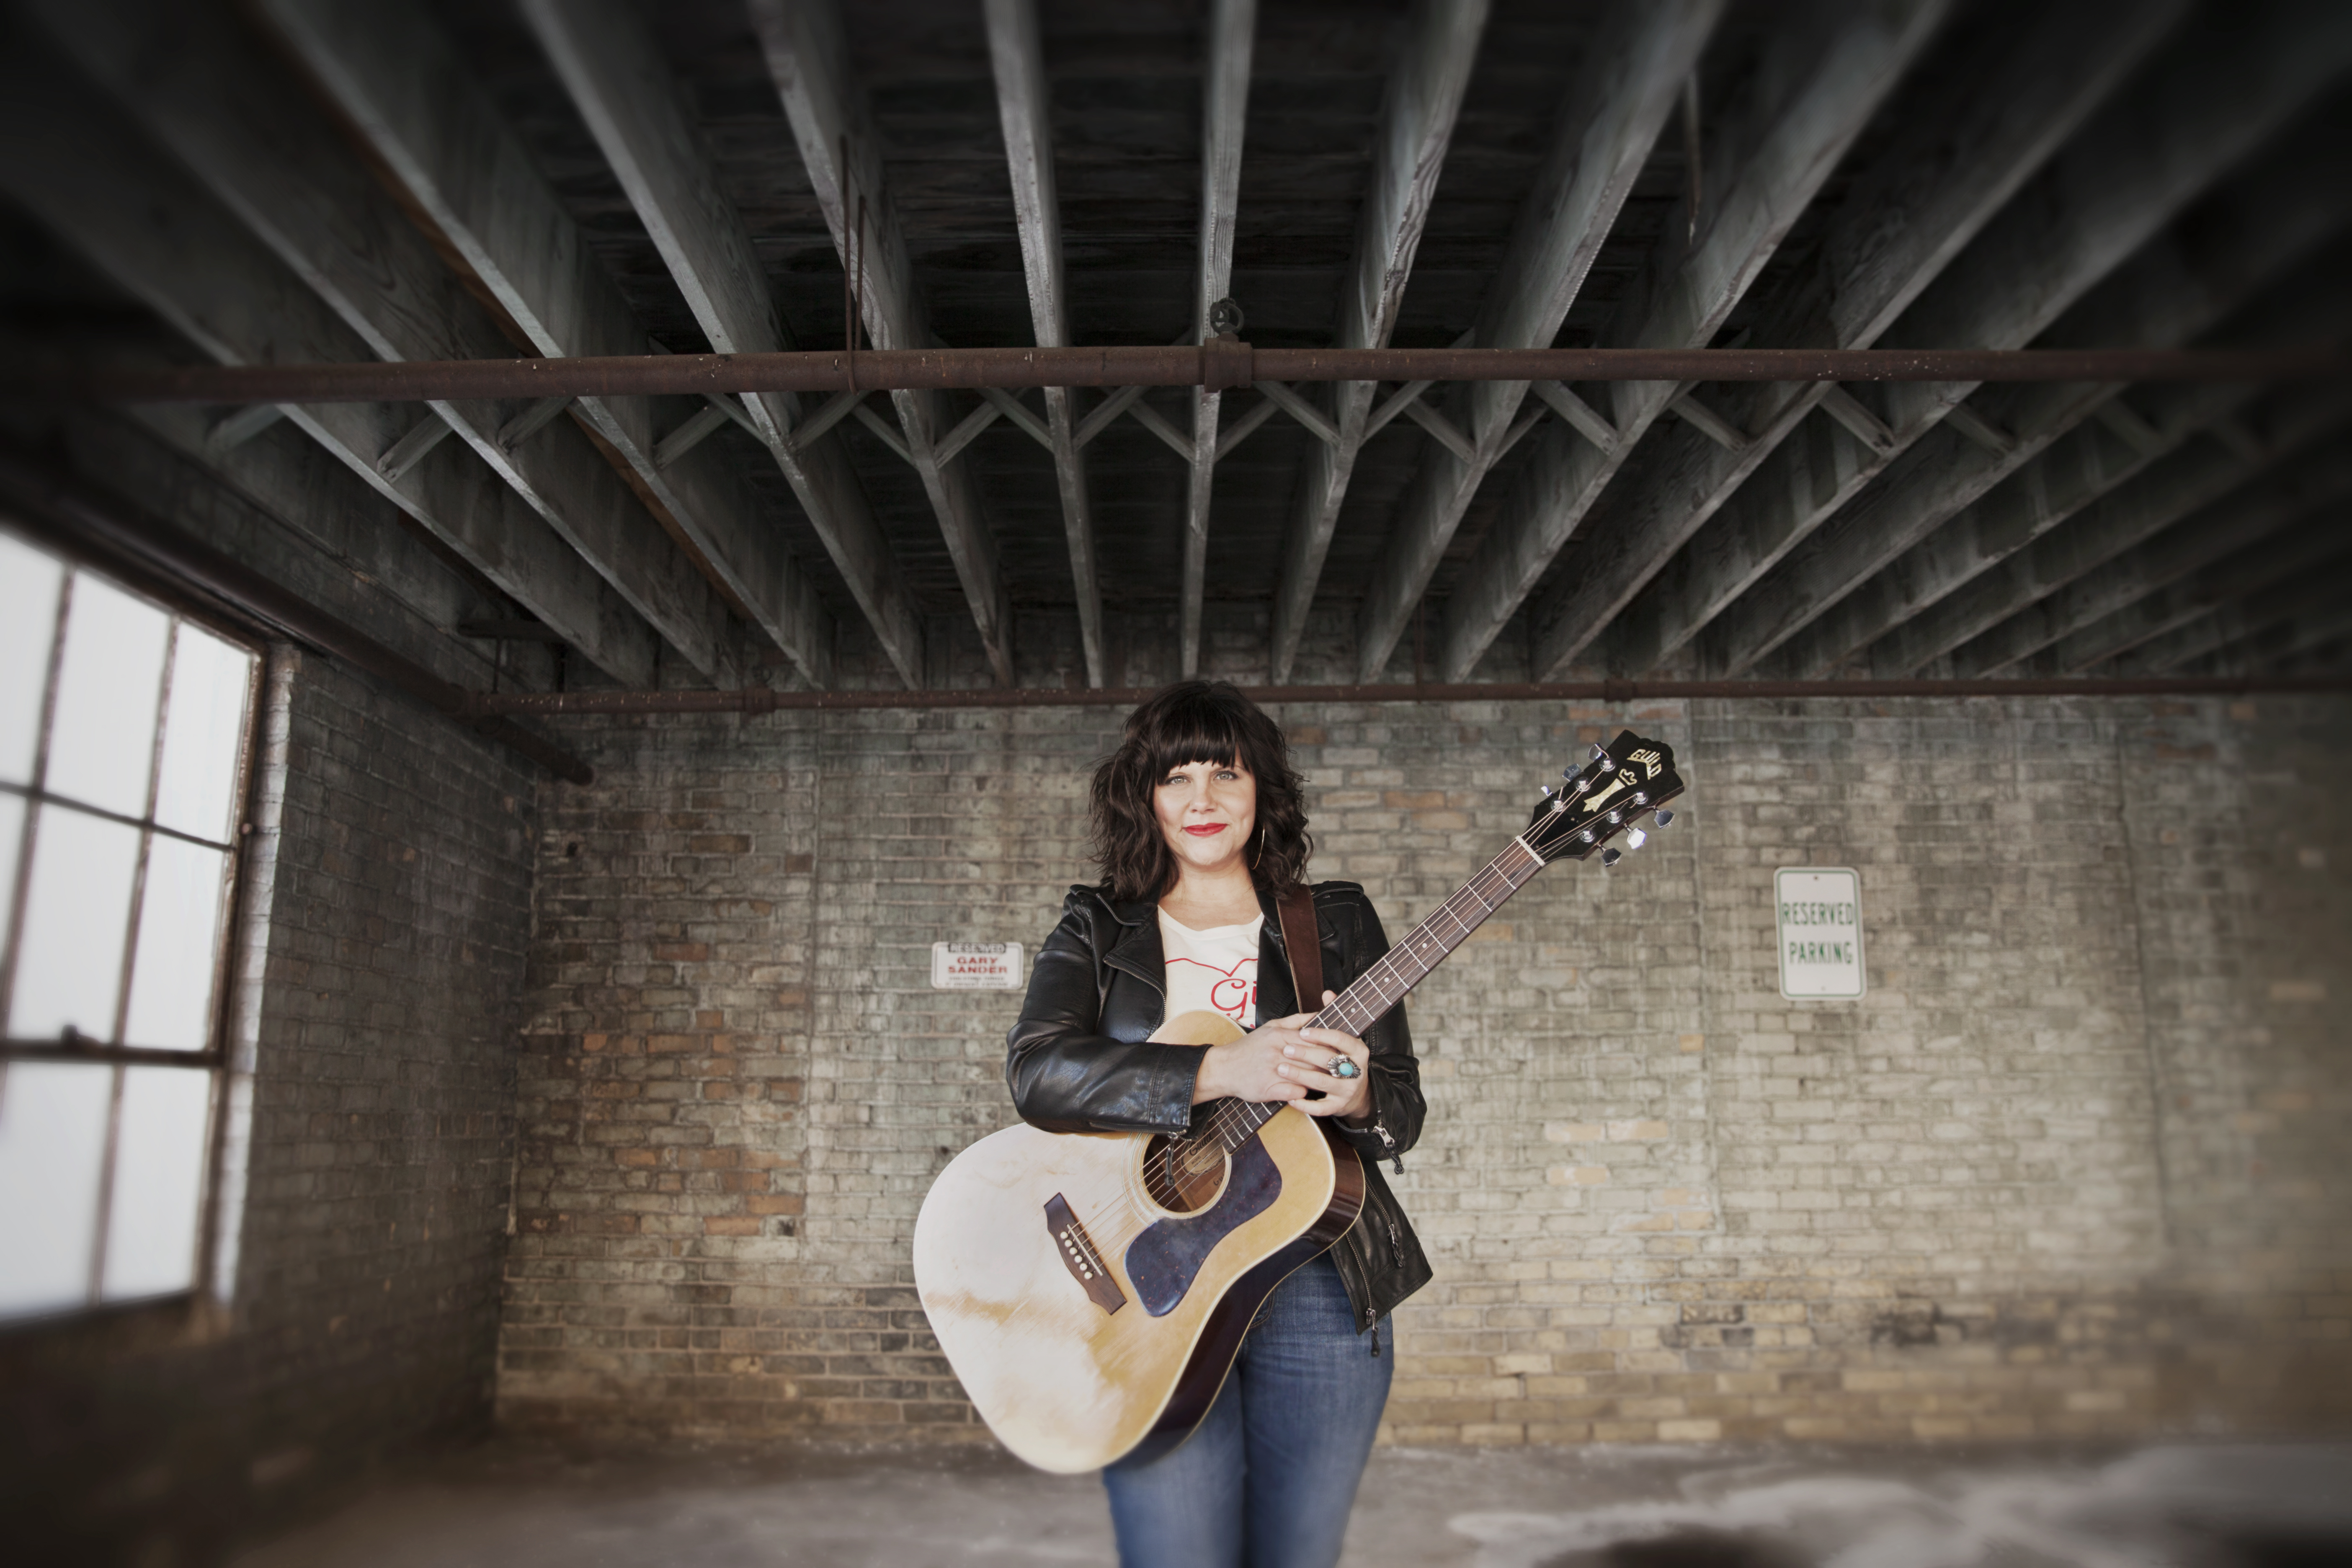 Caption: Singer Songwriter Vicky Emerson, co-founder of Front Porch Group, Credit: Katie Cannon